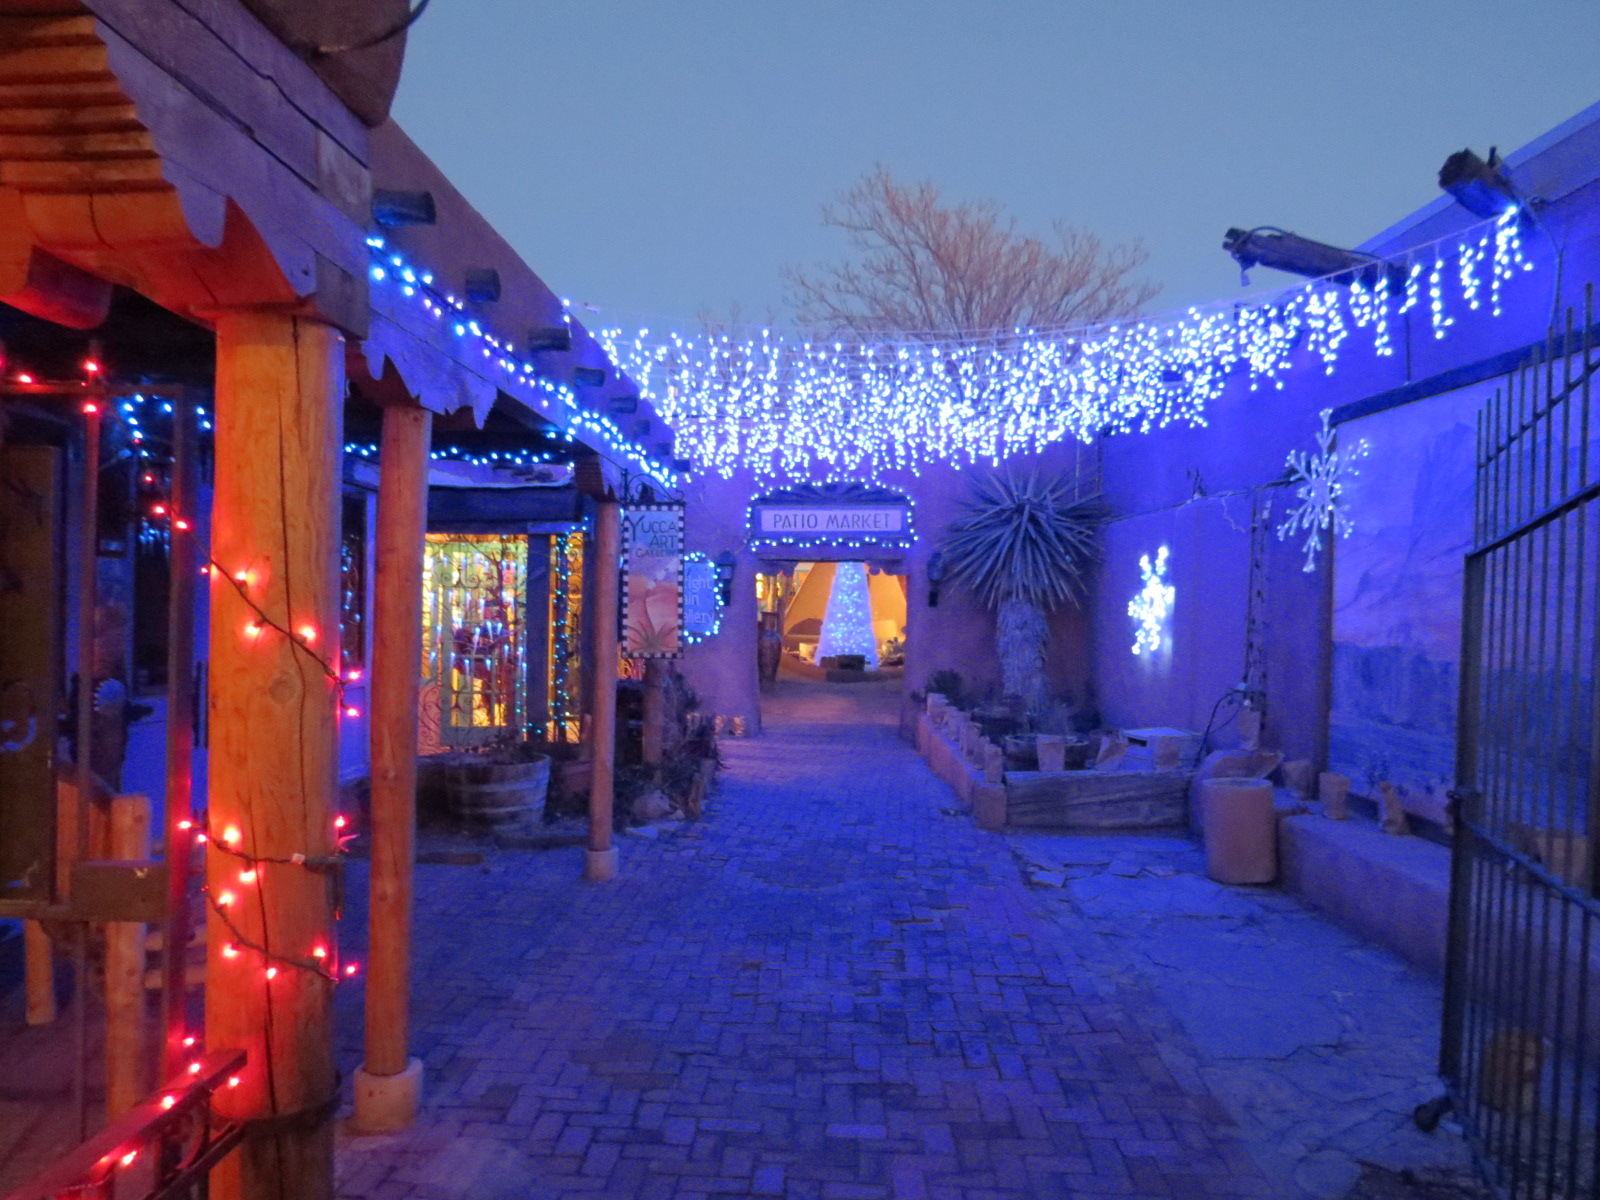 Christmas lights in Old Town, Albuquerque